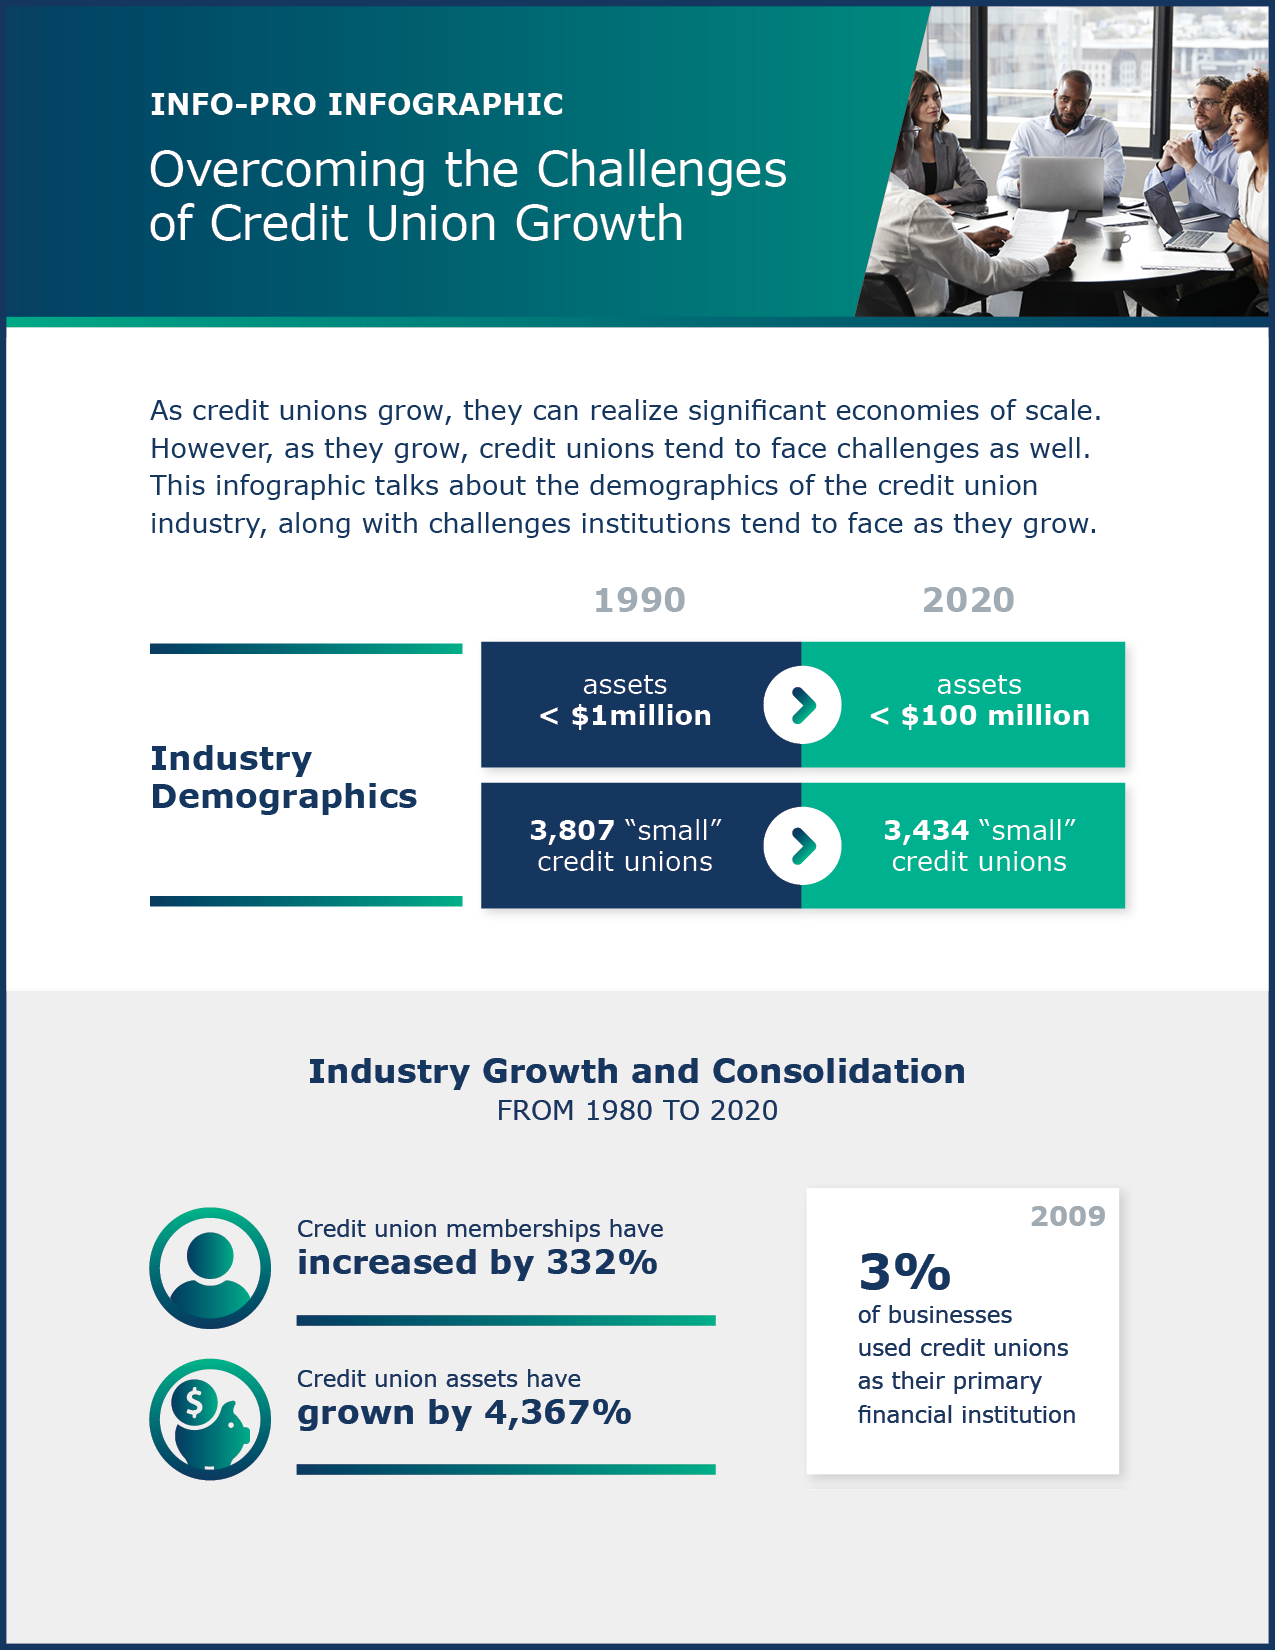 Overcoming the Challenges of Credit Union Growth